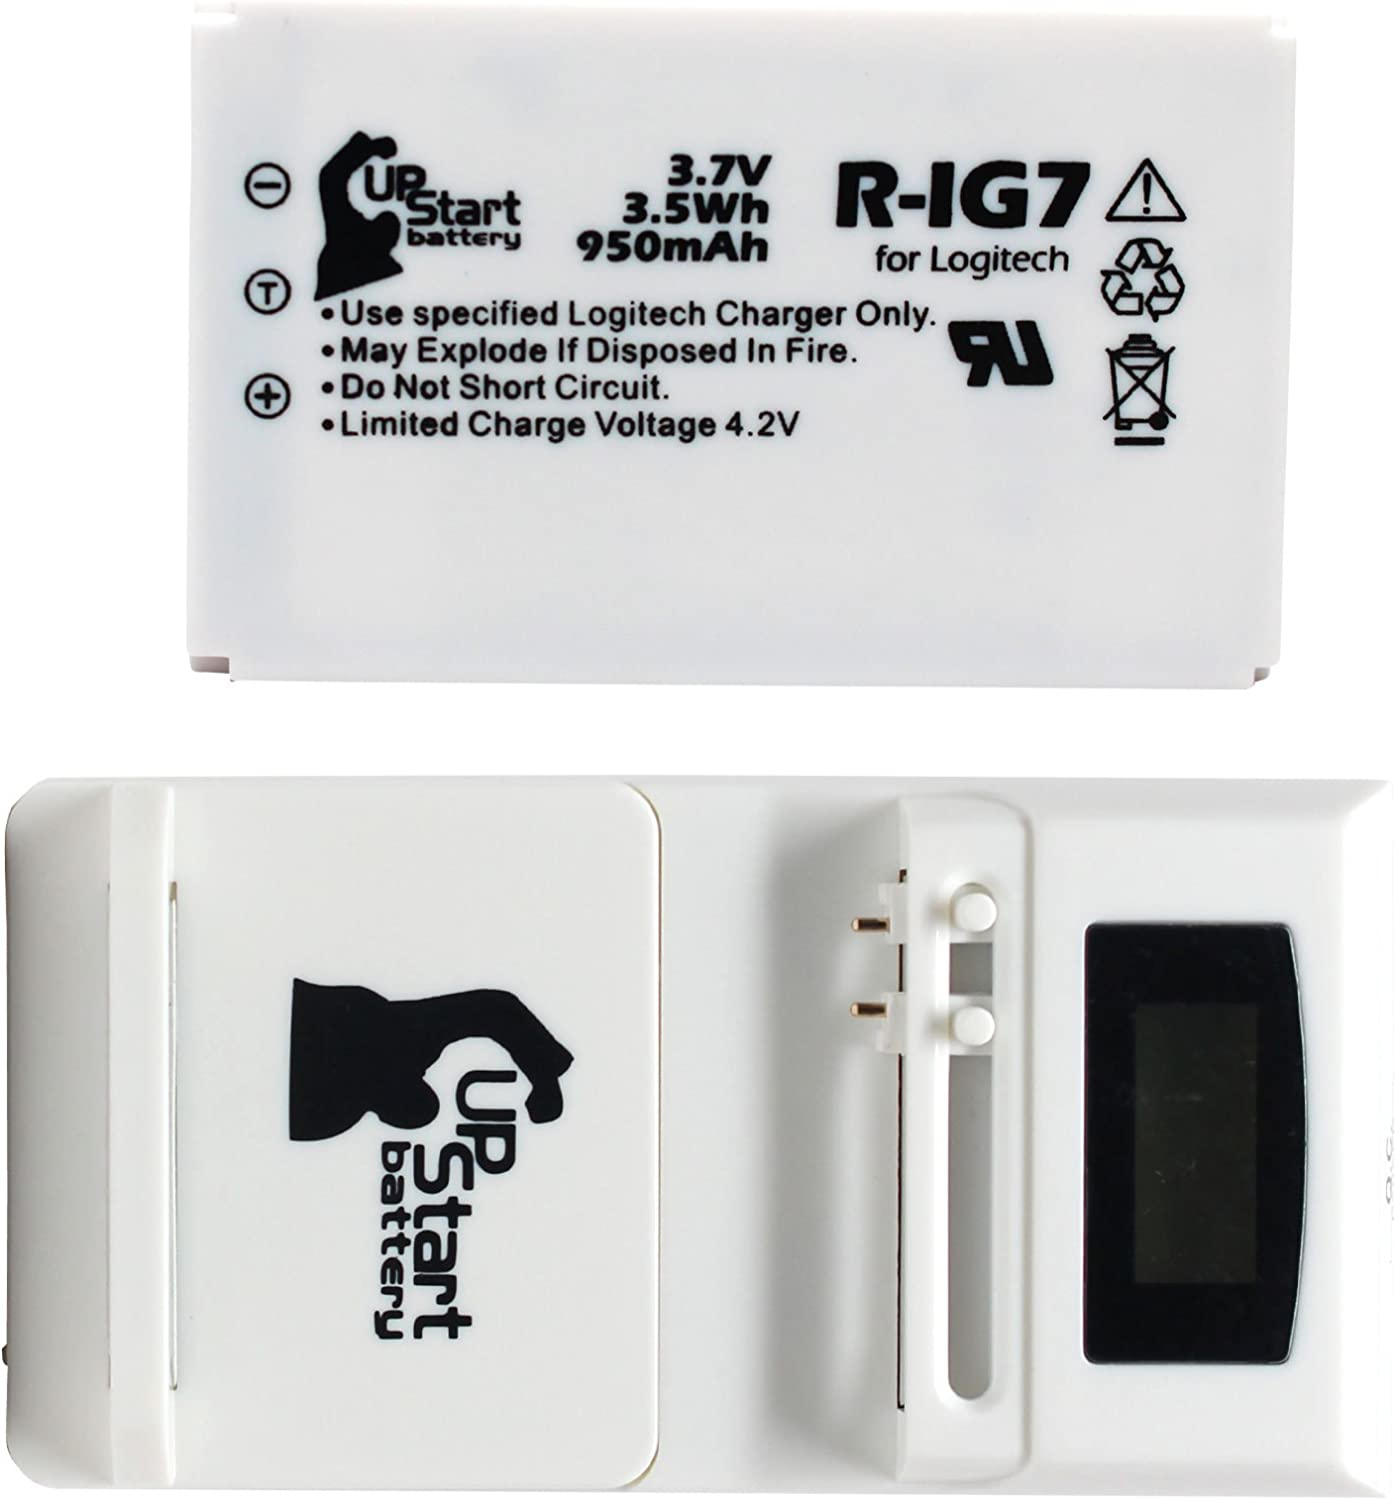 950mAh 3.7V Li-ion Logitech Harmony One Battery Replacement for ...